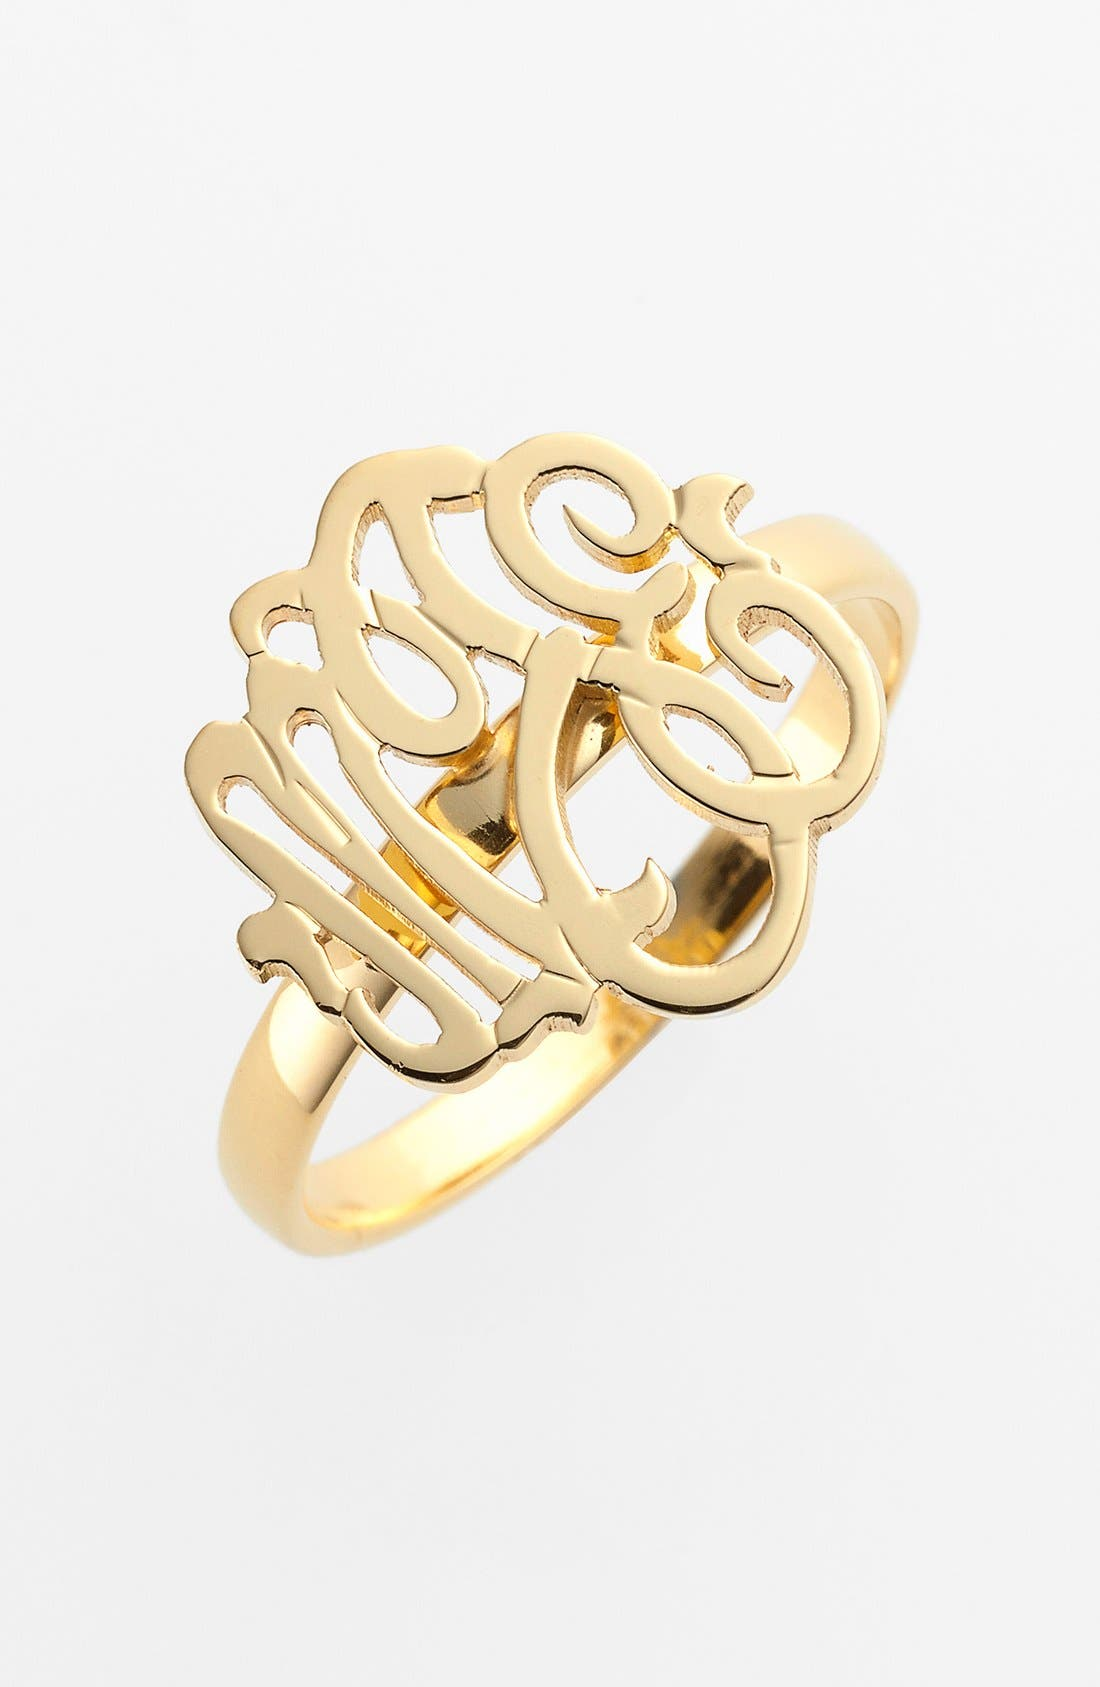 Jane Basch Designs Personalized Script Monogram Ring